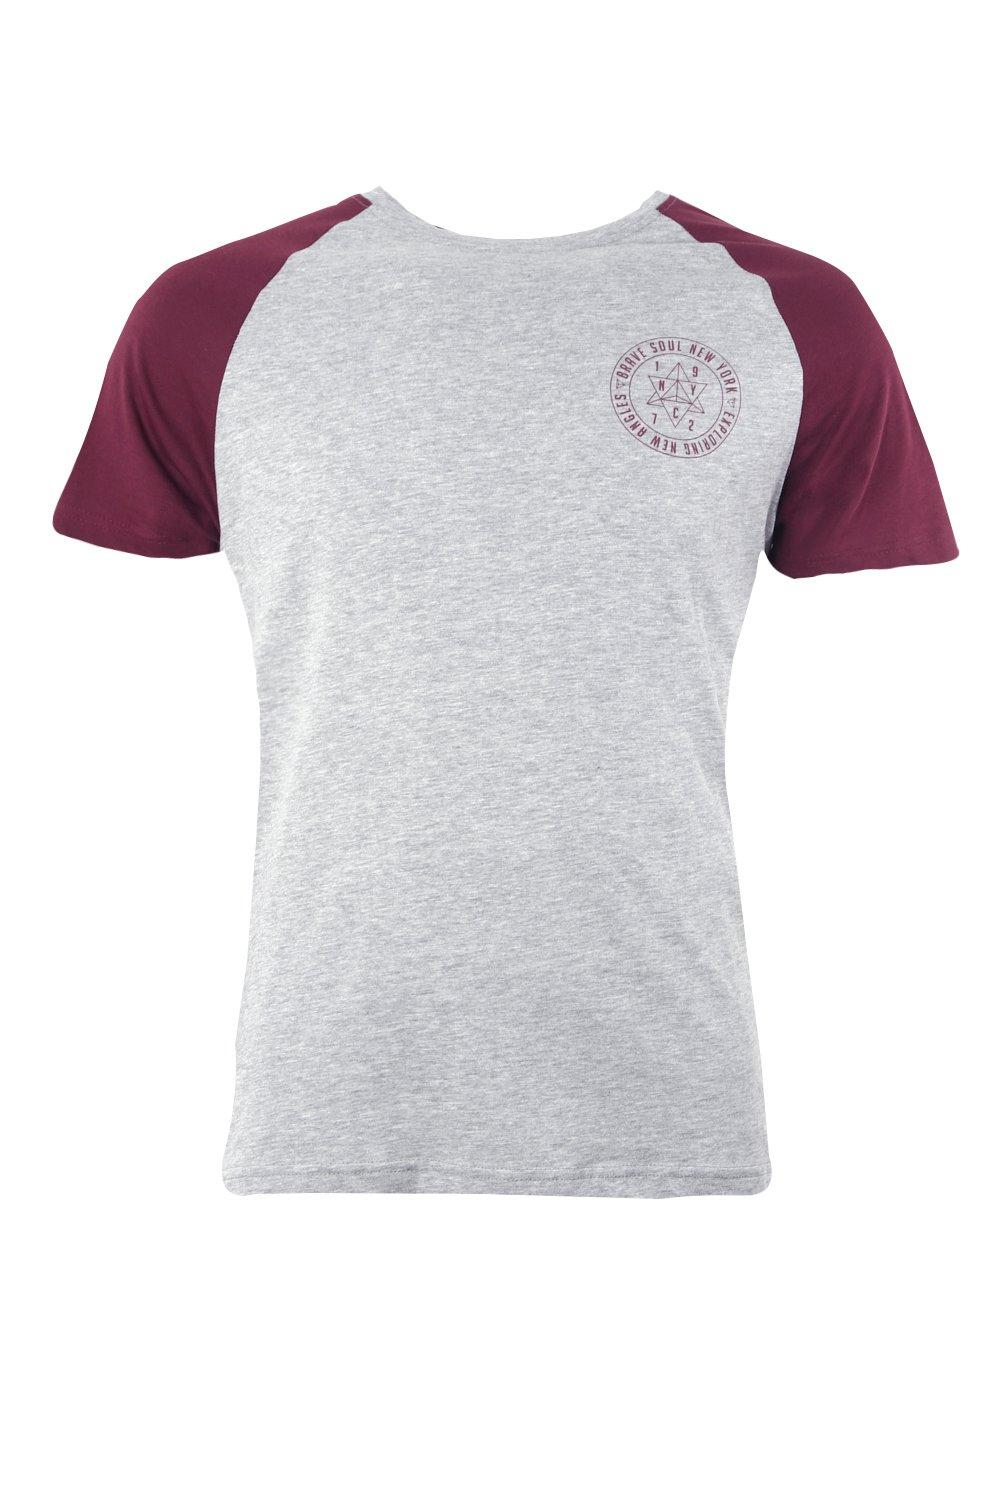 boohooMAN wine Chest Print Raglan T-Shirt